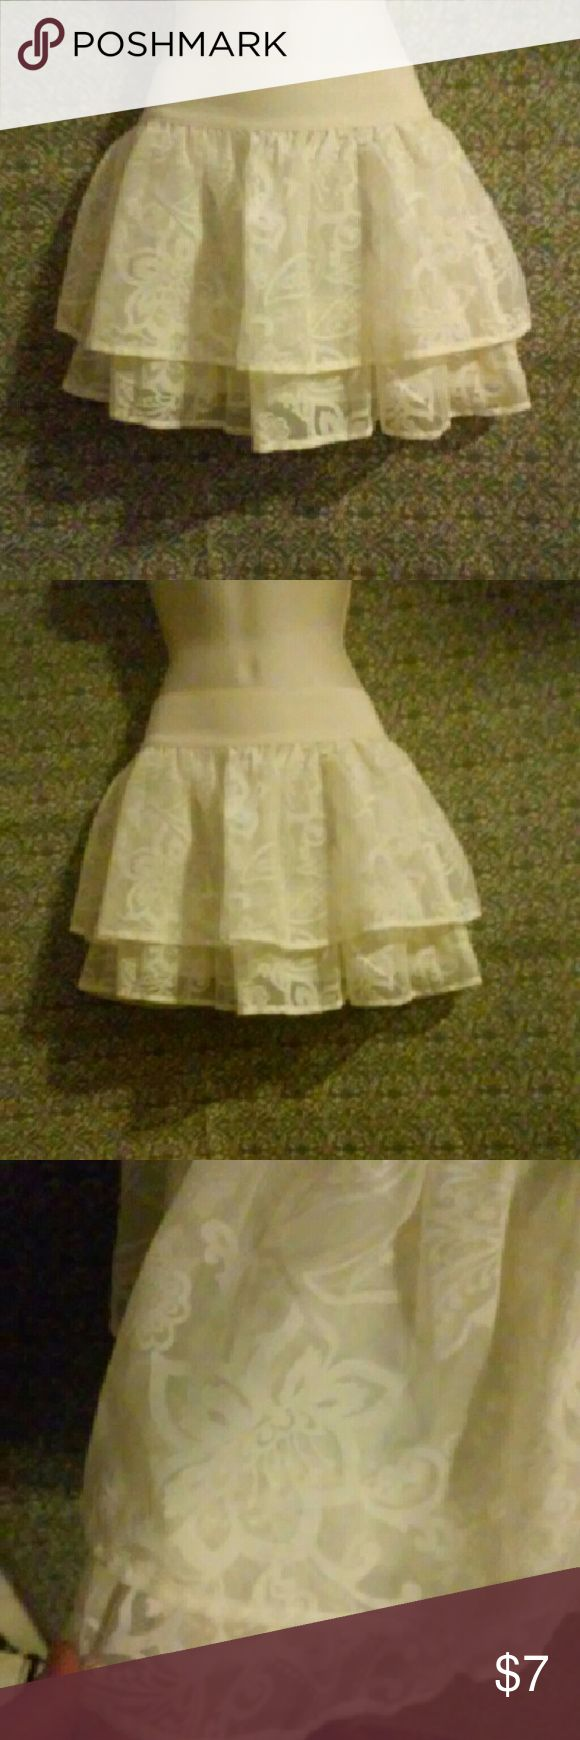 """LACE MINI!! Cute off white colored mini skirt. 2 1/4"""" elastic waist band. Two thin layers of lace and off white underlay. Perfect summer skirt!  Waist is 23"""" around unstretched. Length is 13.5"""" no stains. Small fray as pictured. Aeropostale Skirts Mini"""